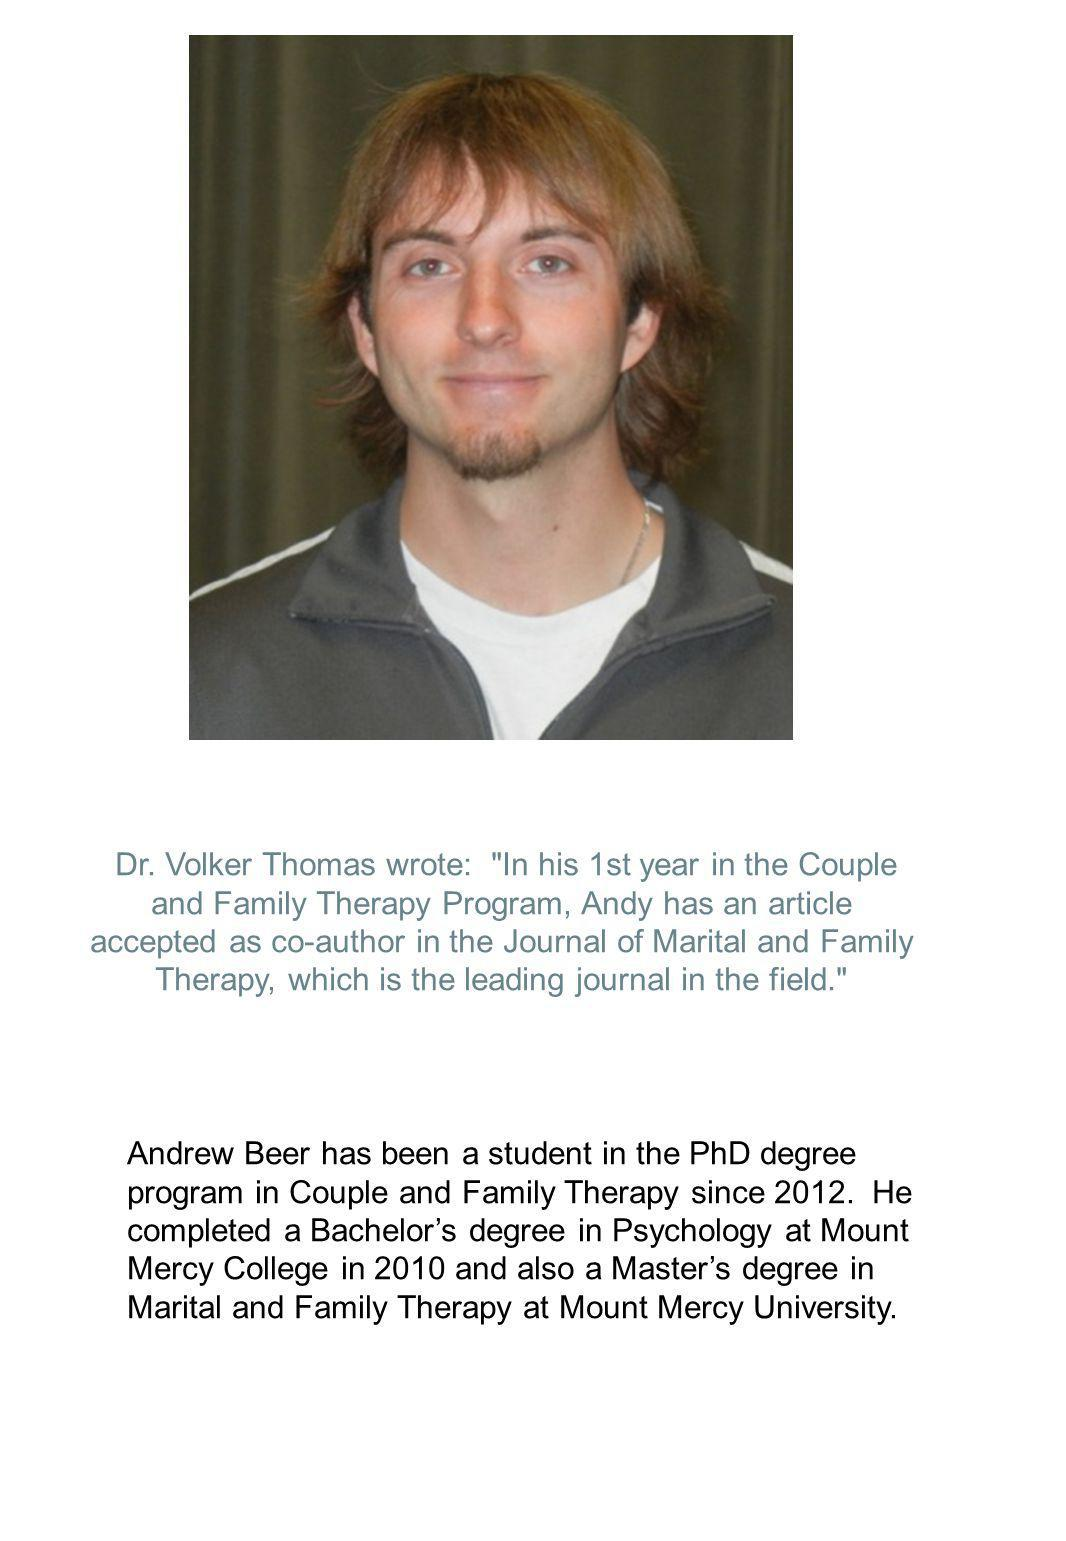 Dr. Volker Thomas wrote: In his 1st year in the Couple and Family Therapy Program, Andy has an article accepted as co-author in the Journal of Marital and Family Therapy, which is the leading journal in the field.